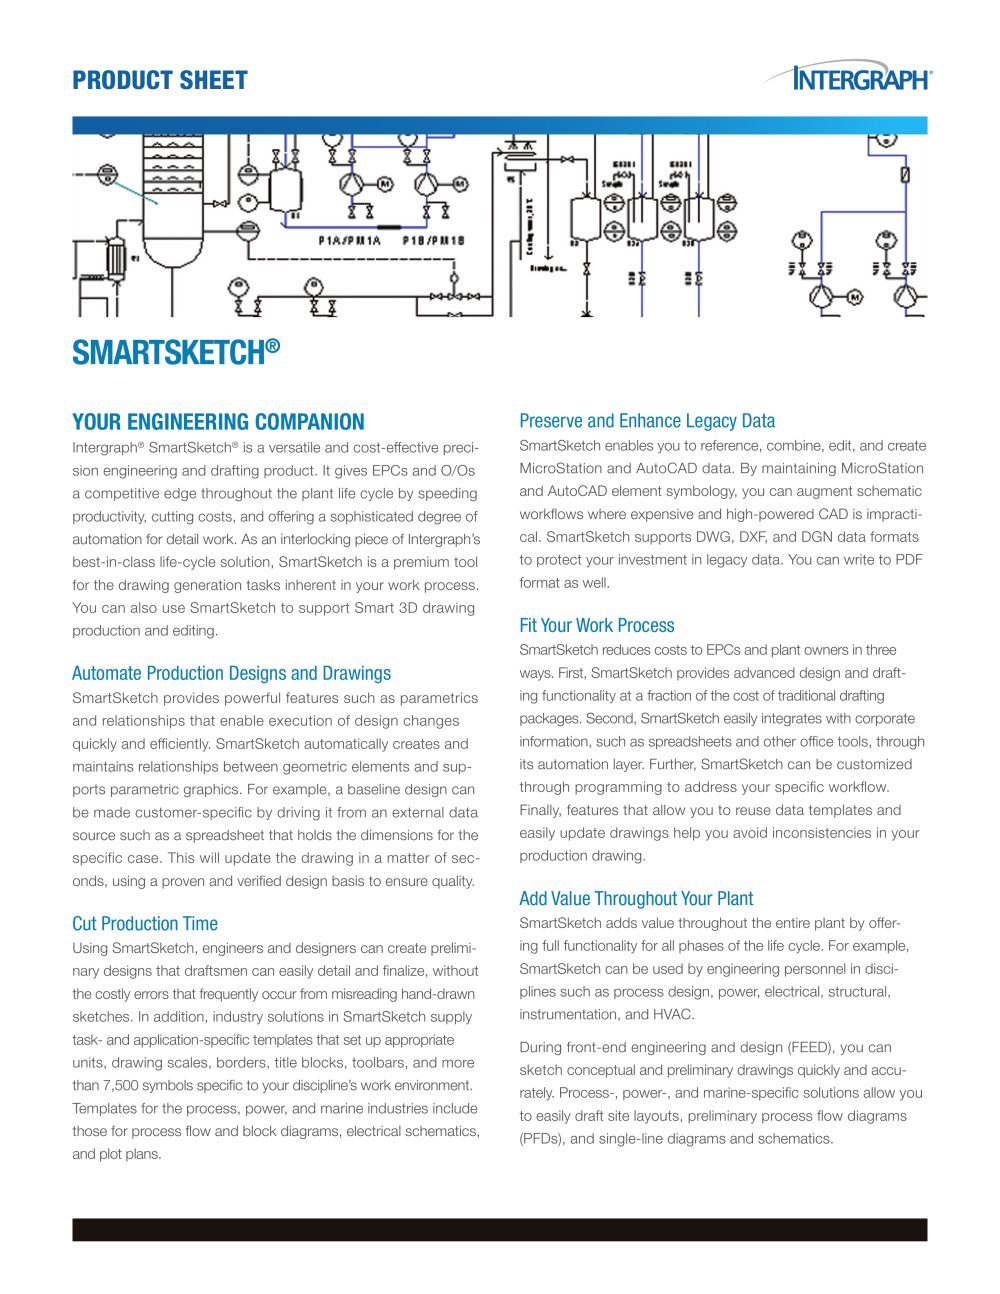 Smartsketch Product Sheet Intergraph Pdf Catalogues Hvac Drawing Autocad 1 2 Pages